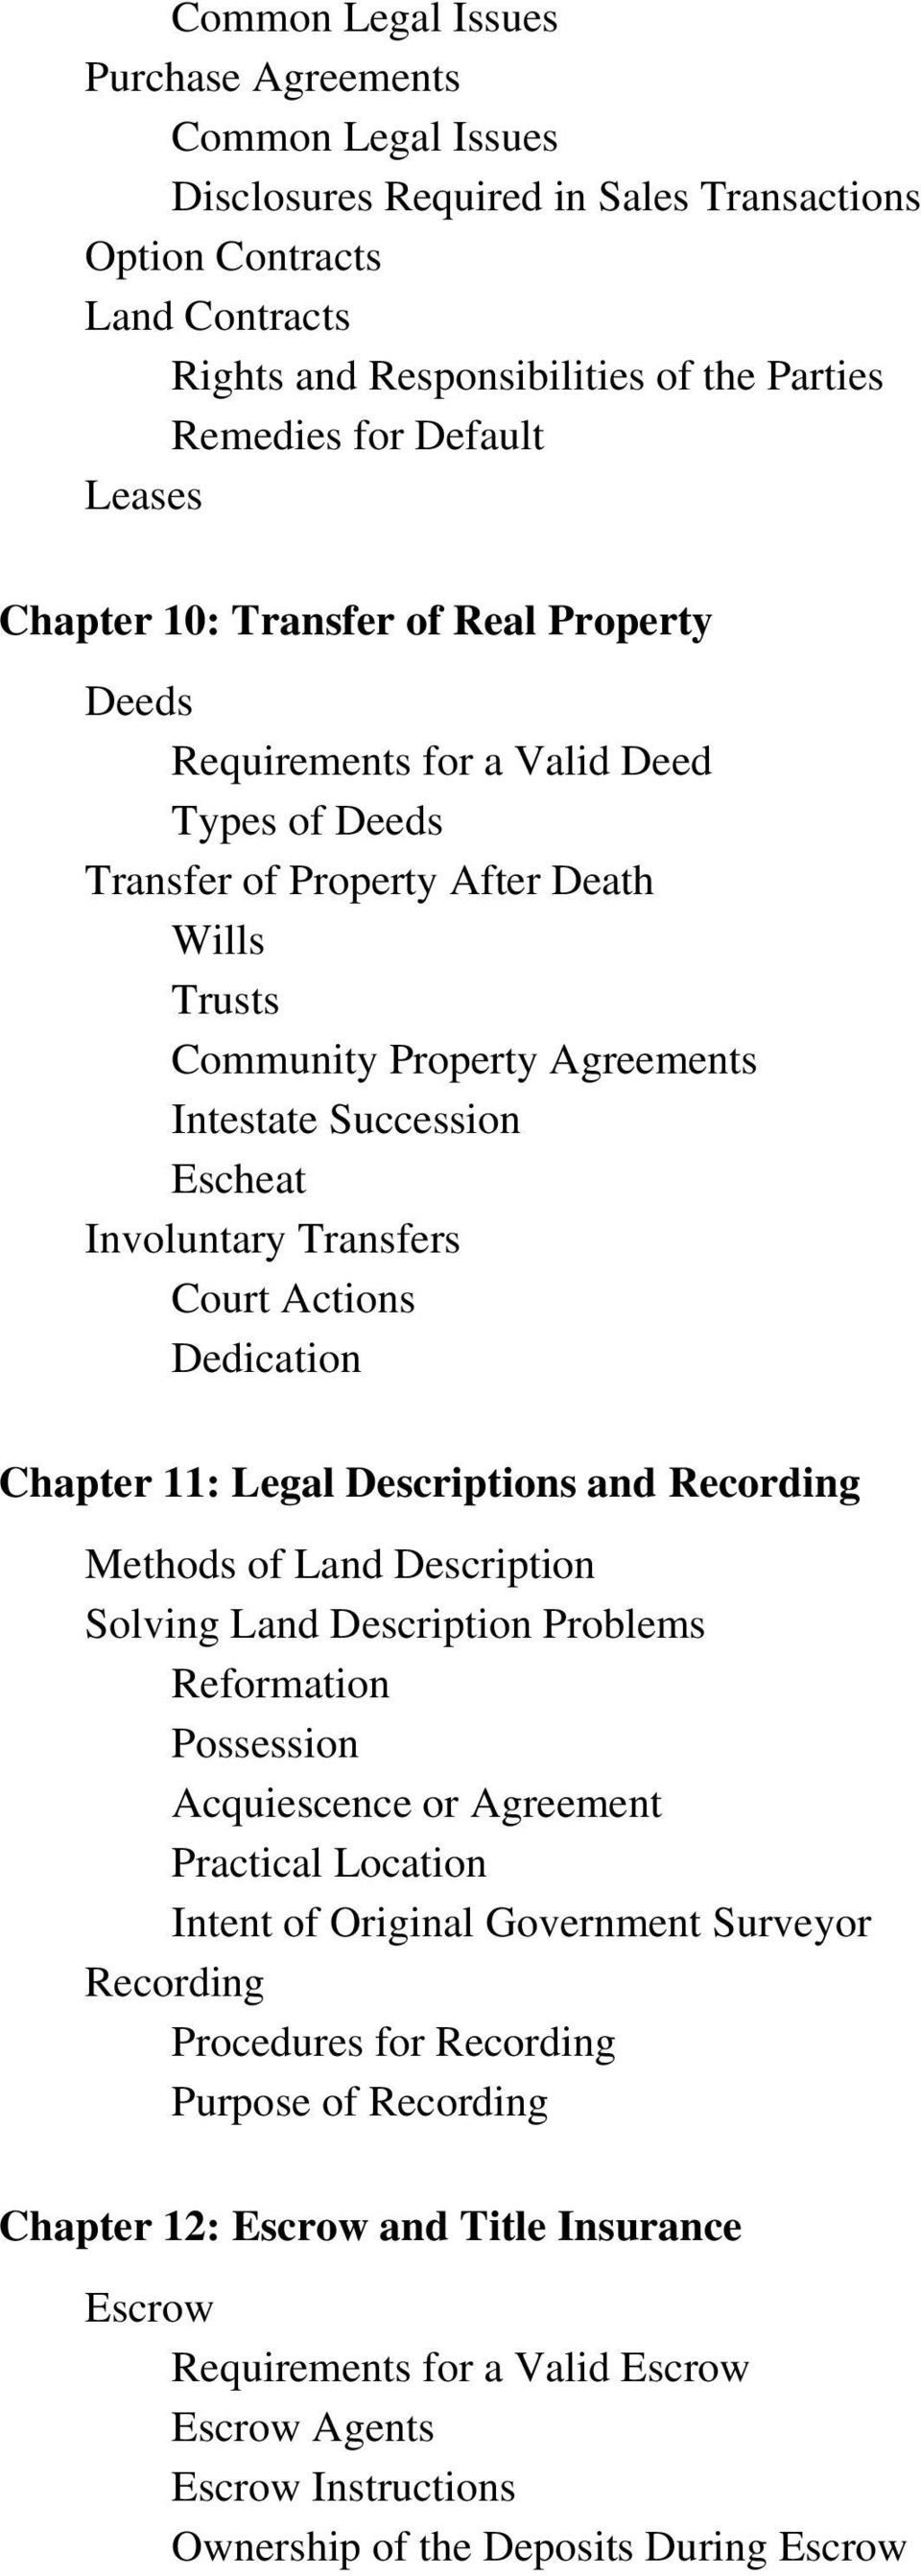 Escheat Involuntary Transfers Court Actions Dedication Chapter 11: Legal Descriptions and Recording Methods of Land Description Solving Land Description Problems Reformation Possession Acquiescence